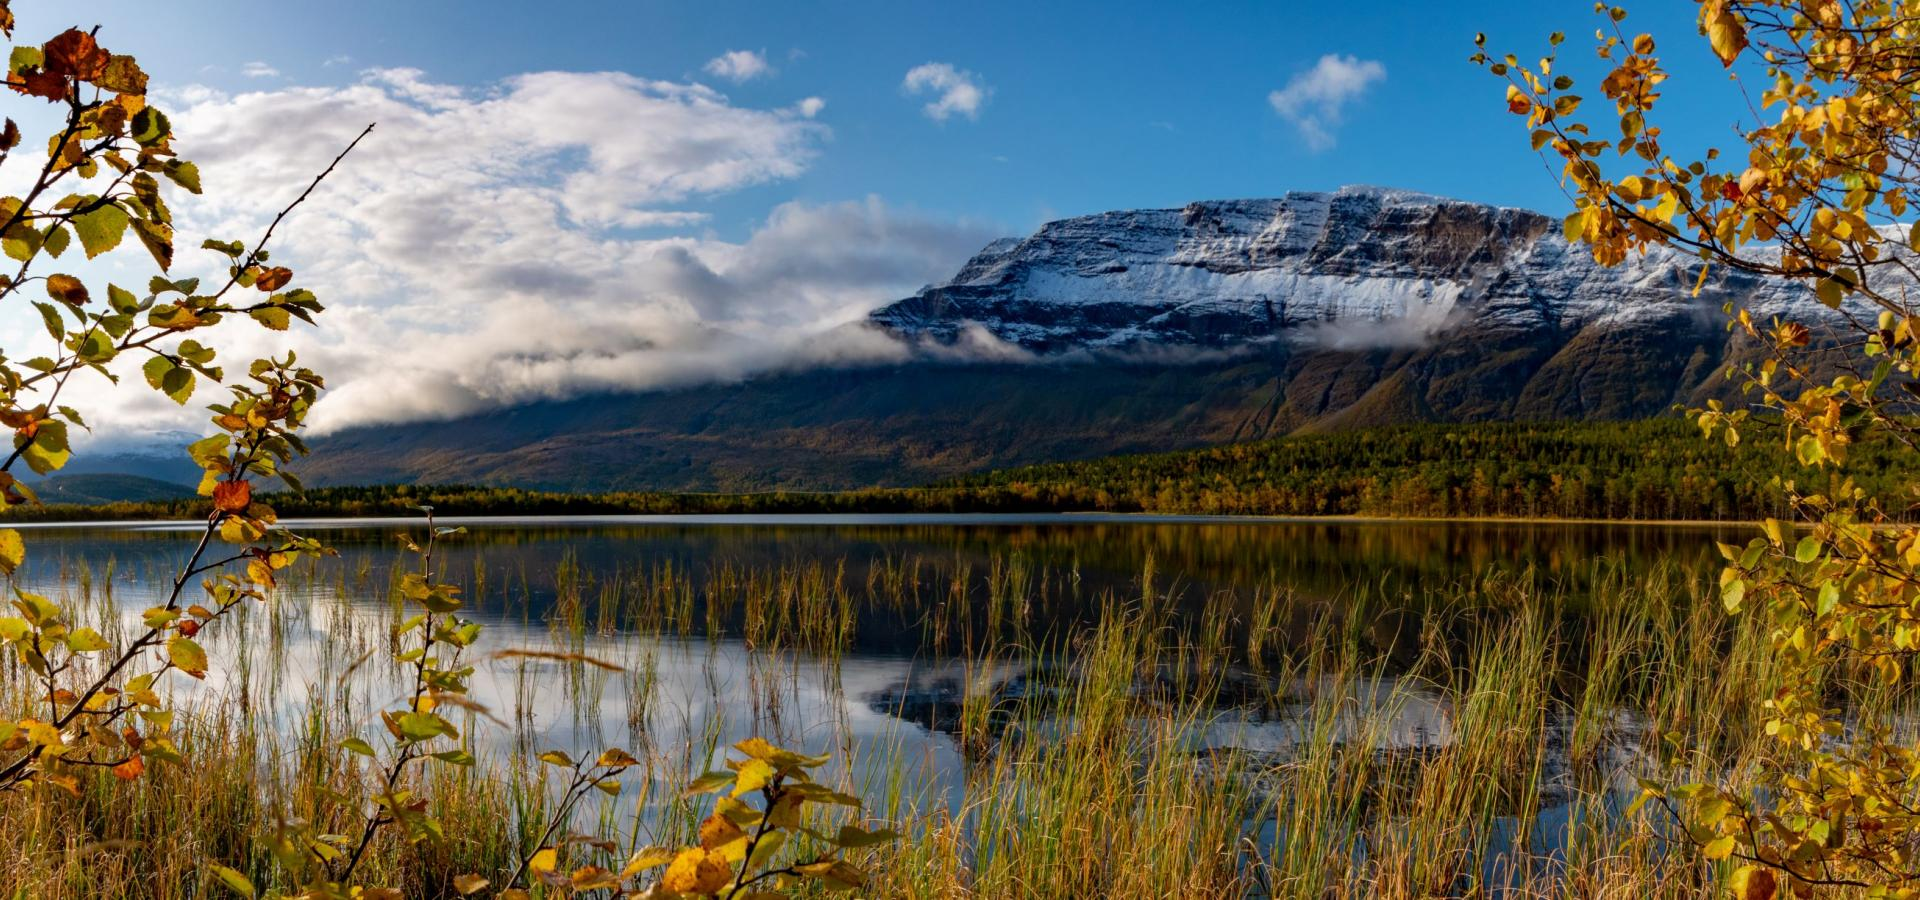 Lake with autumn leaves in the foreground and snowcapped mountains in the background